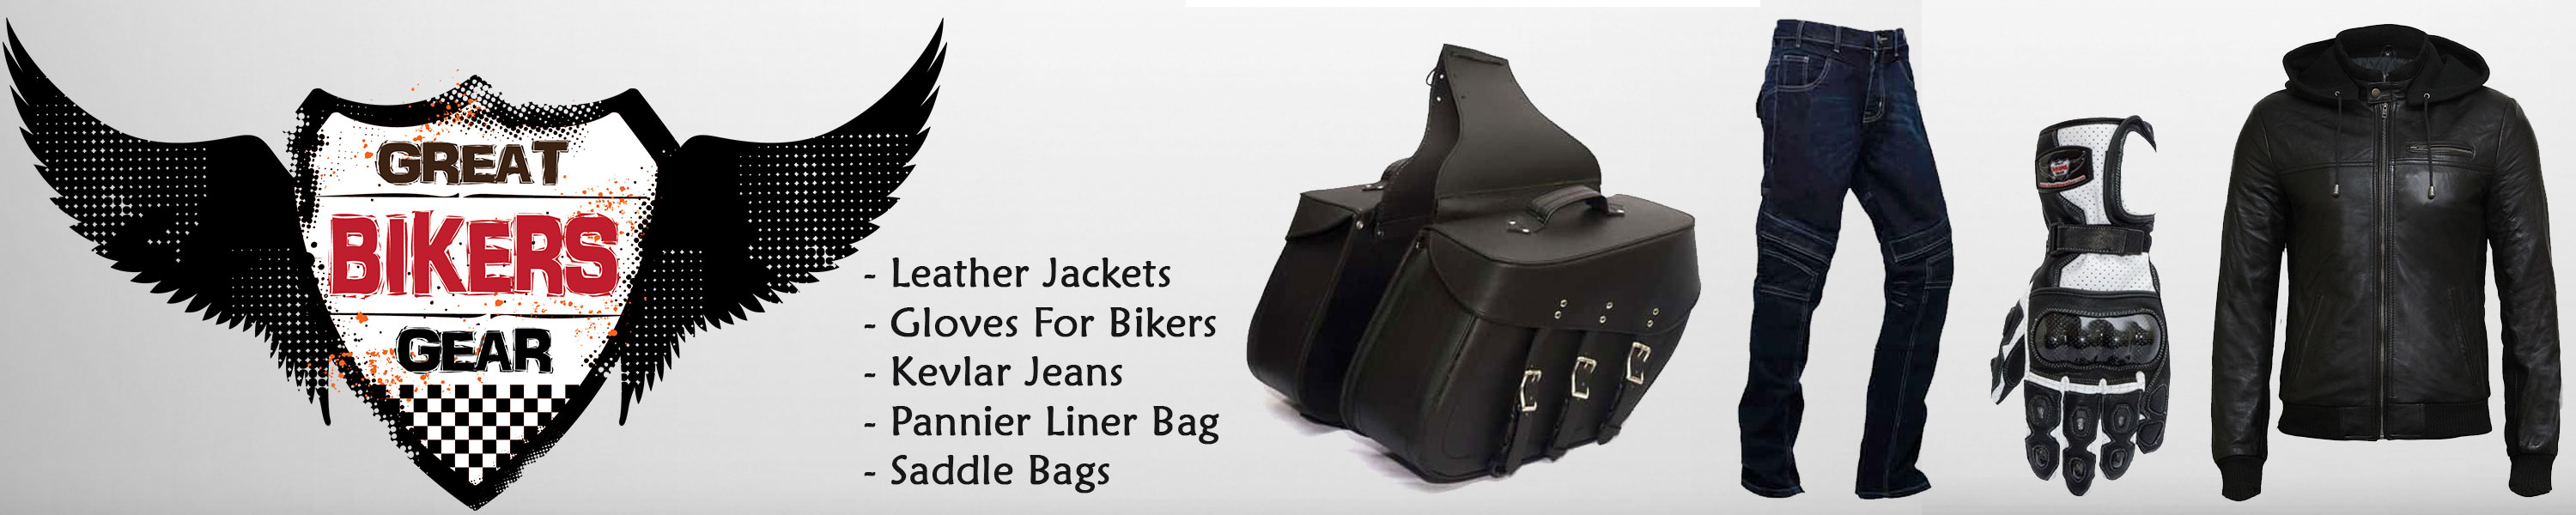 GREAT BIKERS GEAR Pannier Liner Bags to Fit KTM 1290 Super Adventure 2017 Onwards Inner Luggage Touring Bags